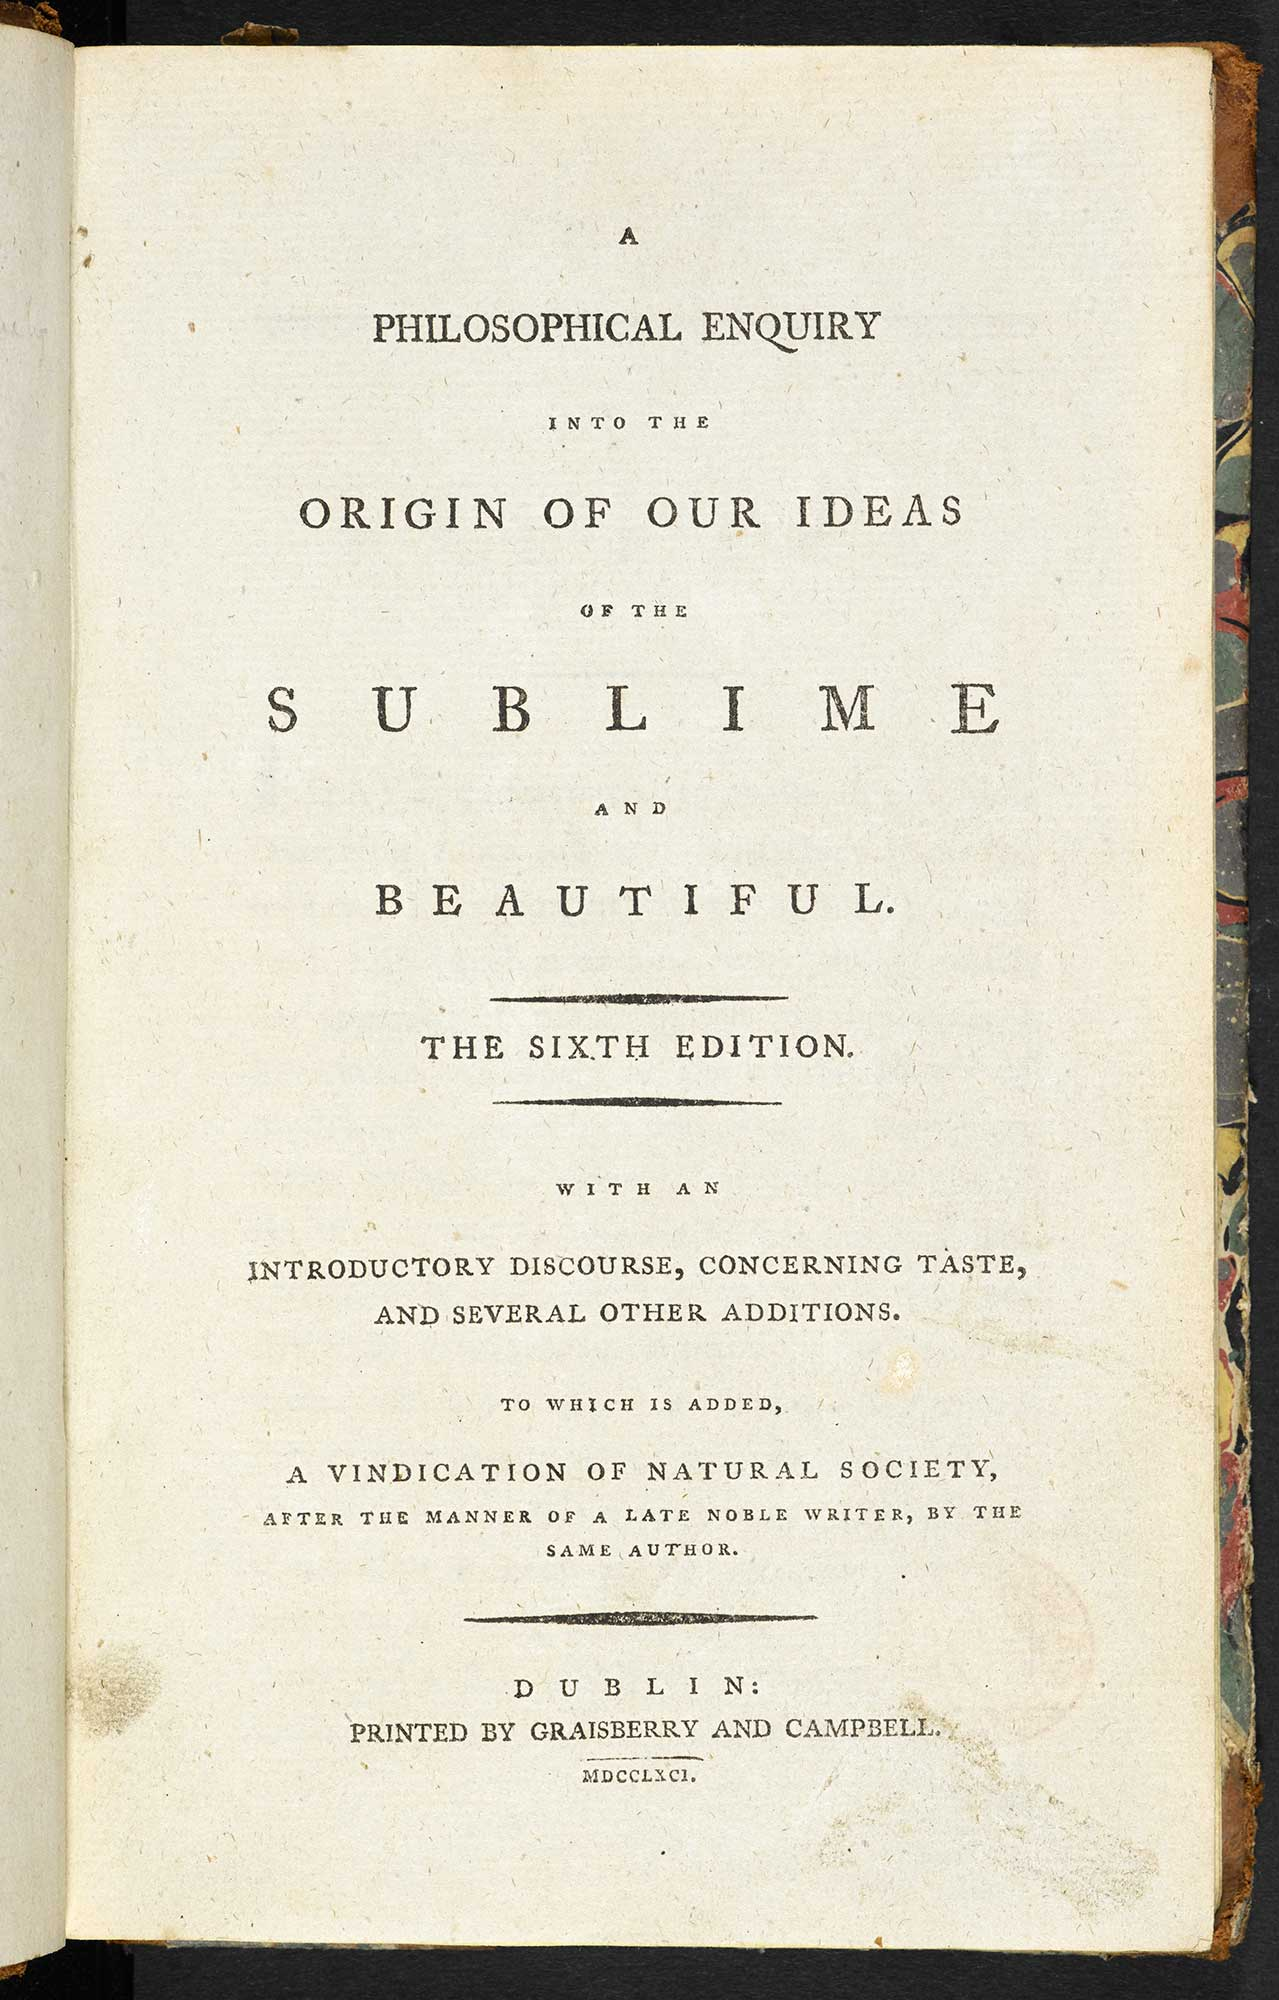 Burke's A Philosophical Enquiry into the Origin of our Ideas of the Sublime and Beautiful [page: title page]